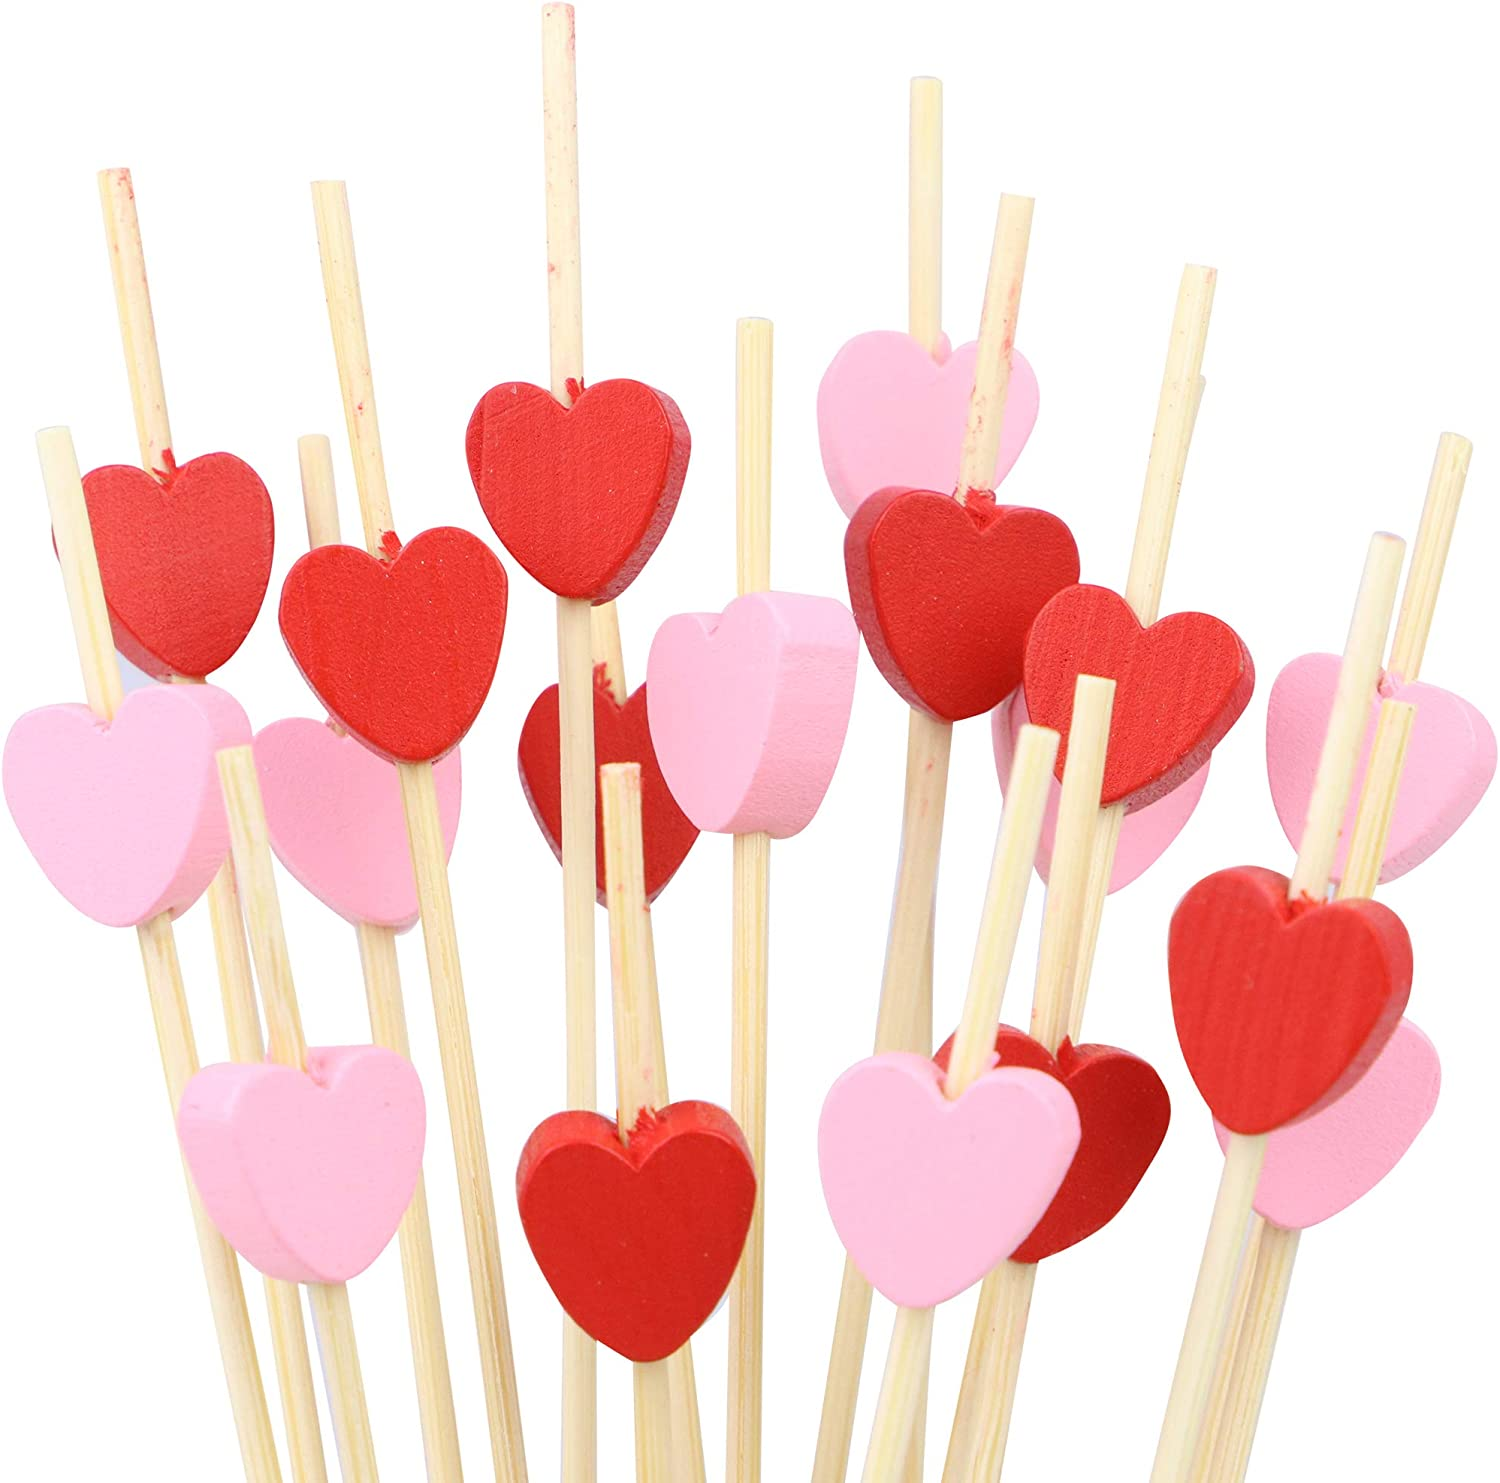 Heart Shaped Cocktail Toothpicks, set of 200 total pieces, 4.7